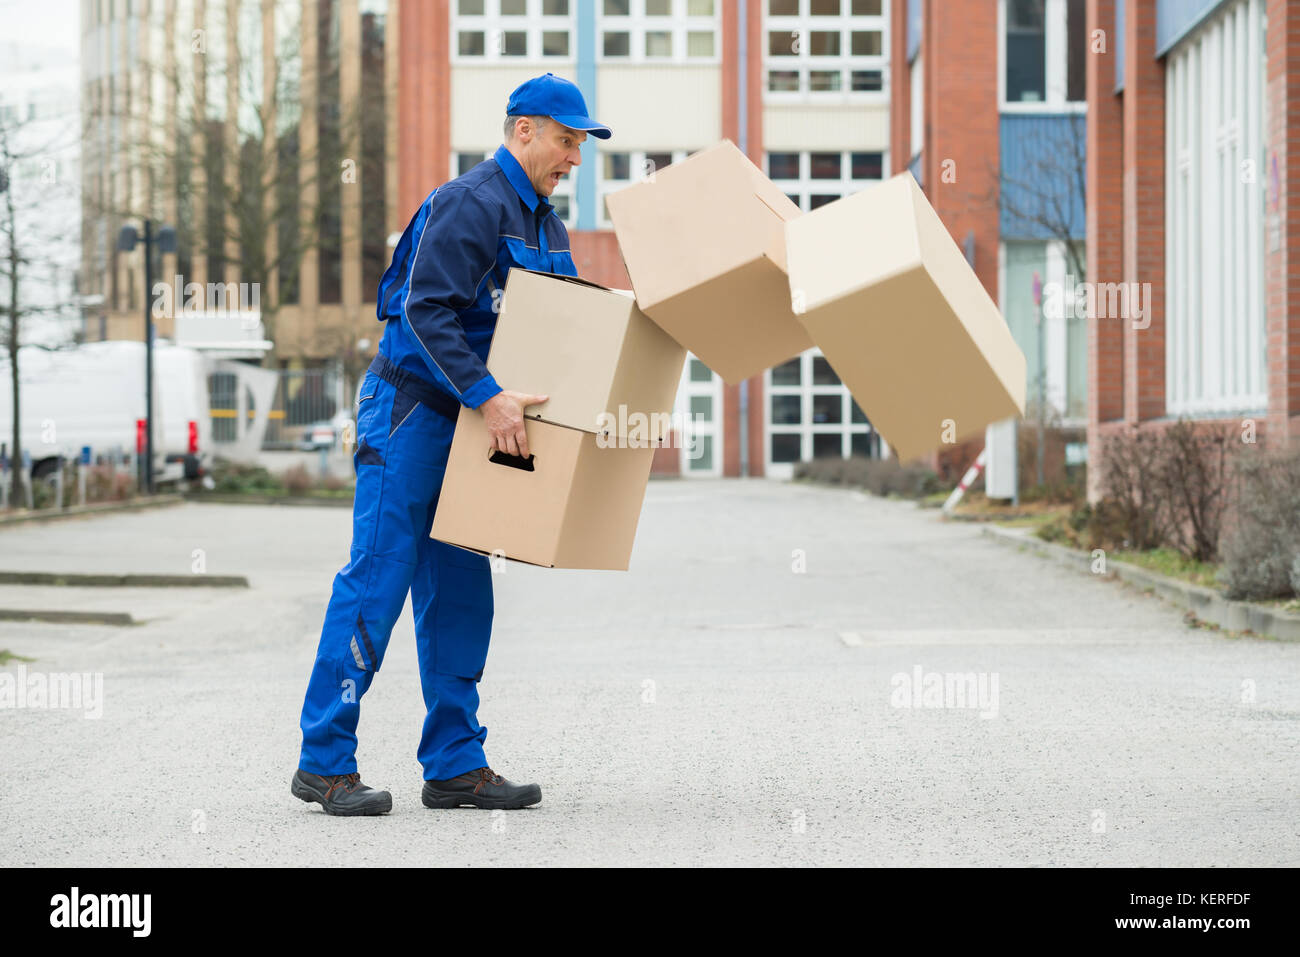 Delivery Man With Falling Stack Of Boxes On Street - Stock Image